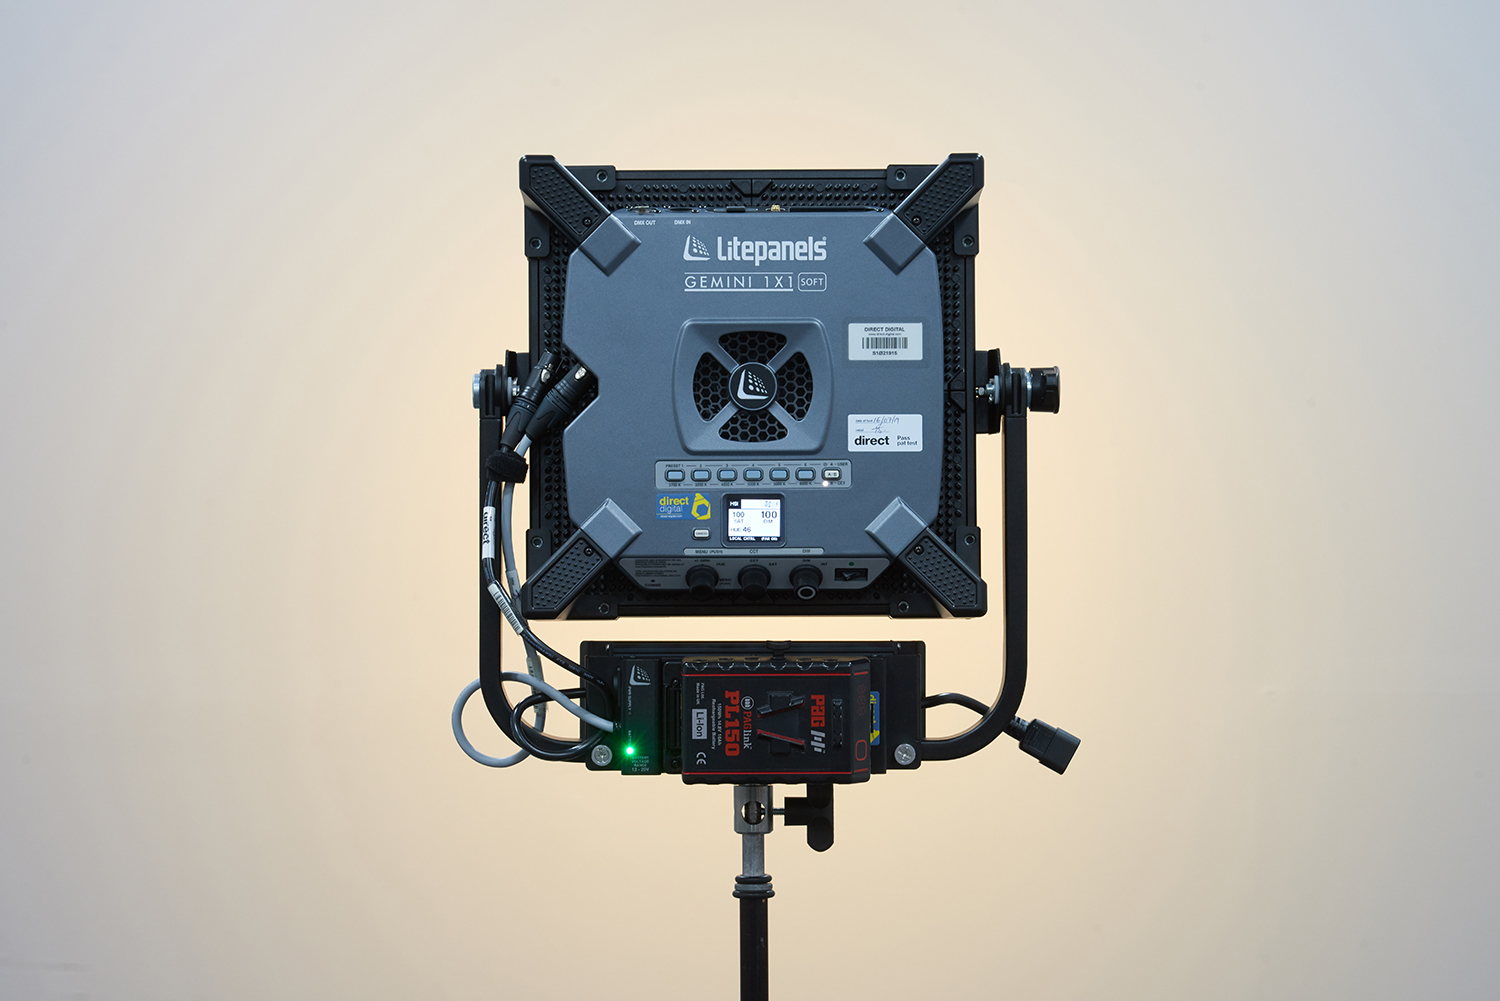 Litepanels Gemini 1x1 Rear